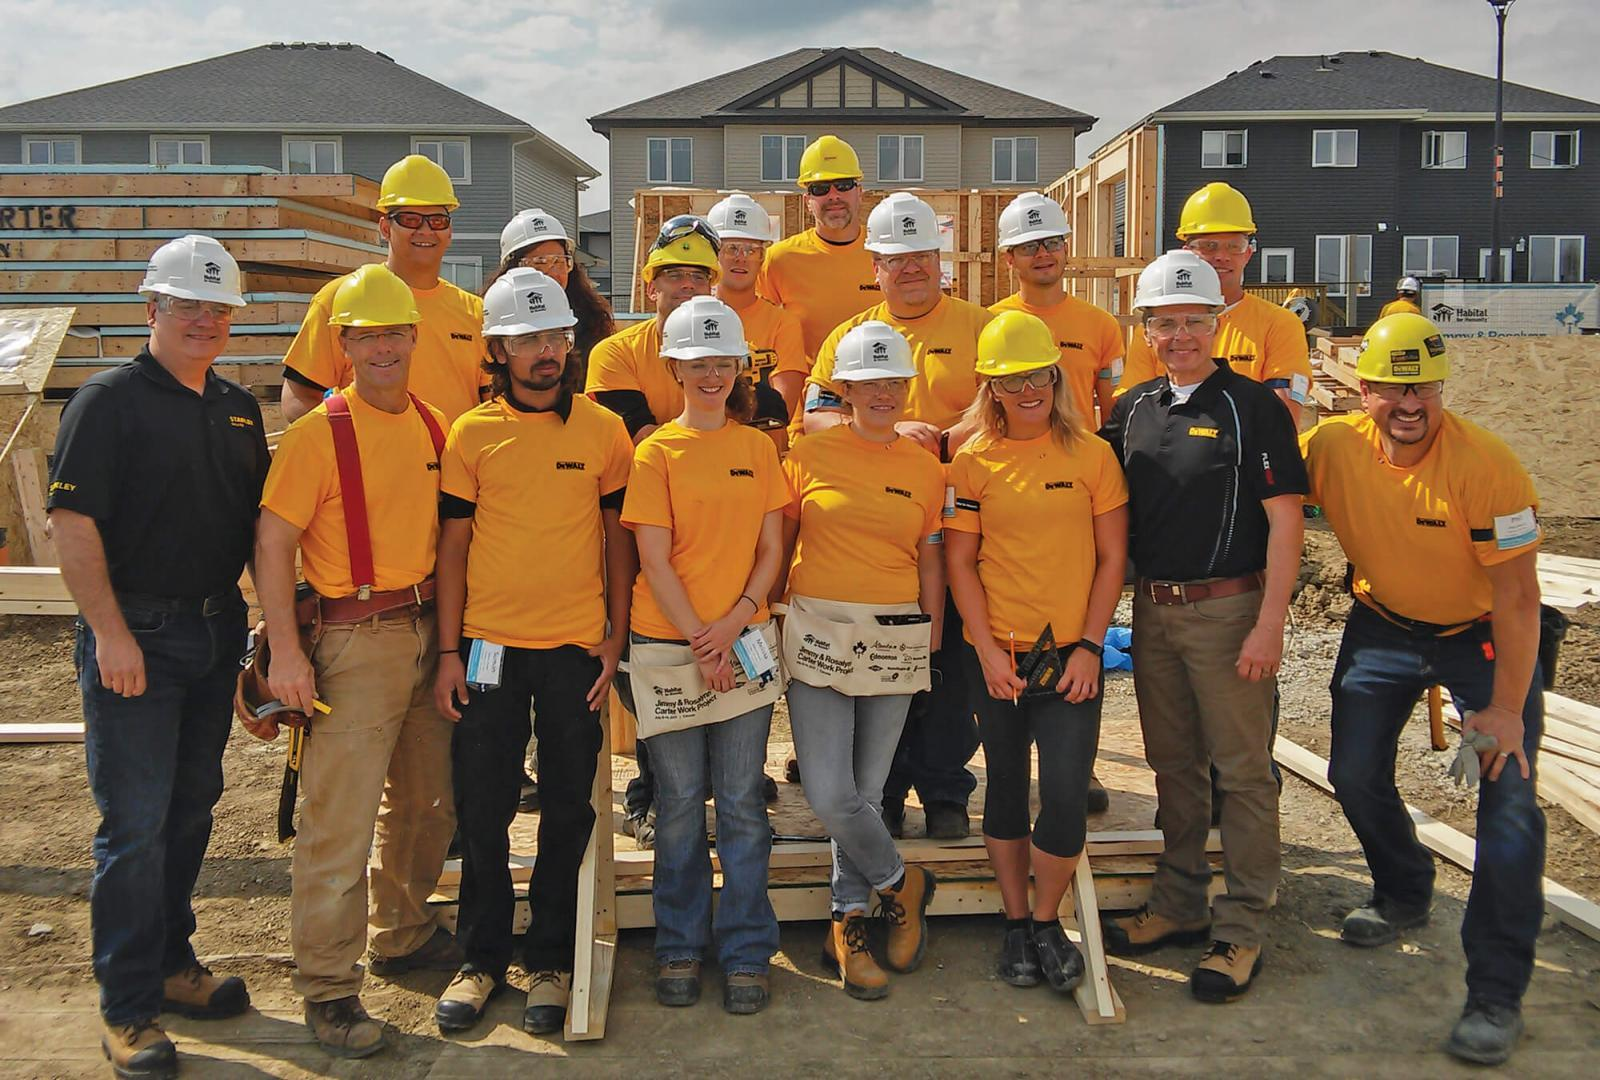 Stanley Black and Decker supports Habitat for Humanity